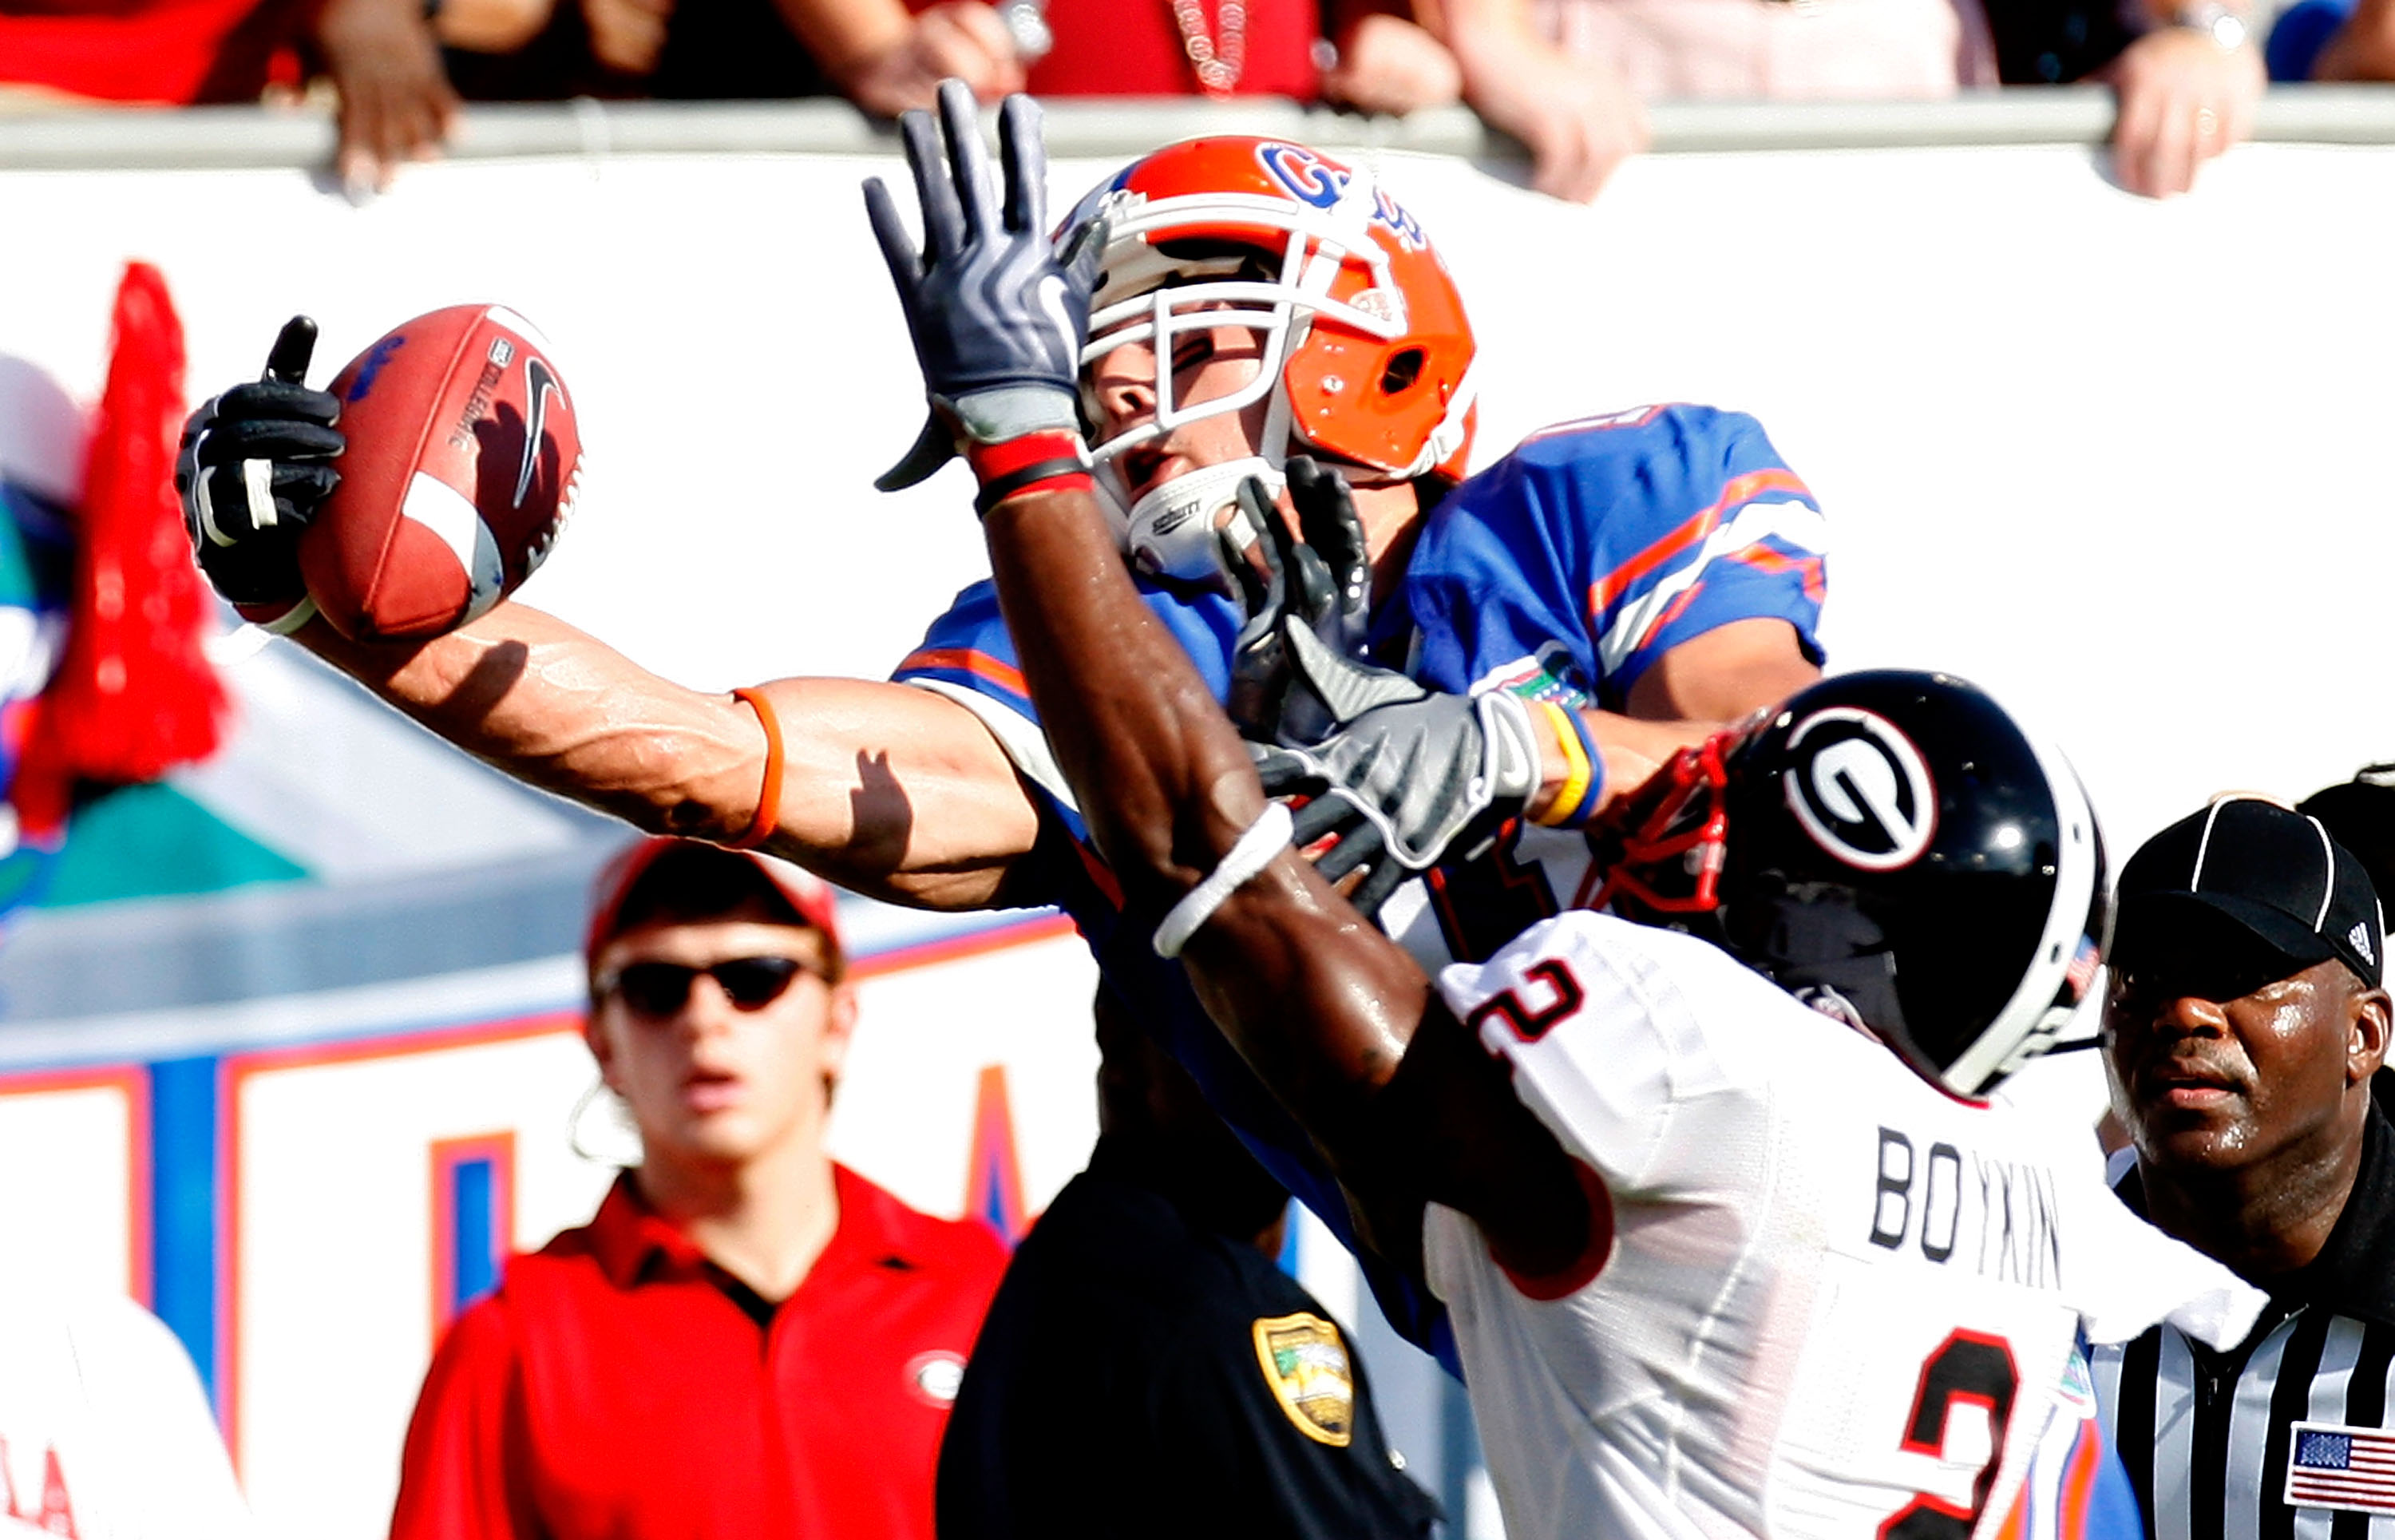 JACKSONVILLE, FL - OCTOBER 31:  Riley Cooper #11 of the Florida Gators pulls in a touchdown reception against Brandon Boykin #2 of the Georgia Bulldogs at Jacksonville Municipal Stadium on October 31, 2009 in Jacksonville, Florida.  (Photo by Kevin C. Cox